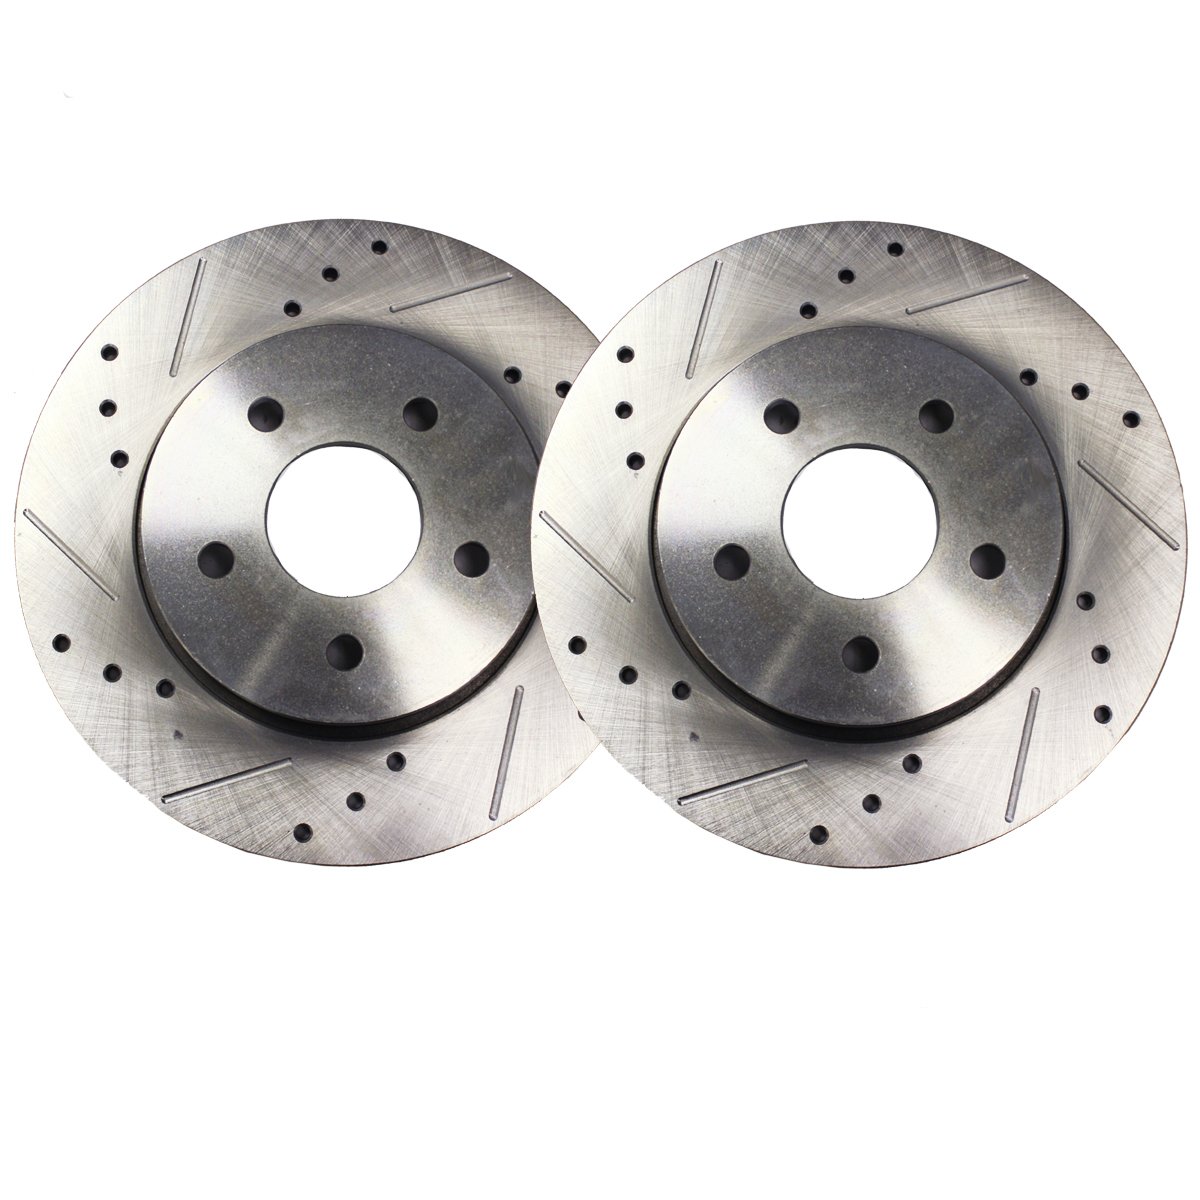 Front Drilled & Slotted Brake Rotors for FWD - Pair (2) 11.73″ (298mm) 6 Lug